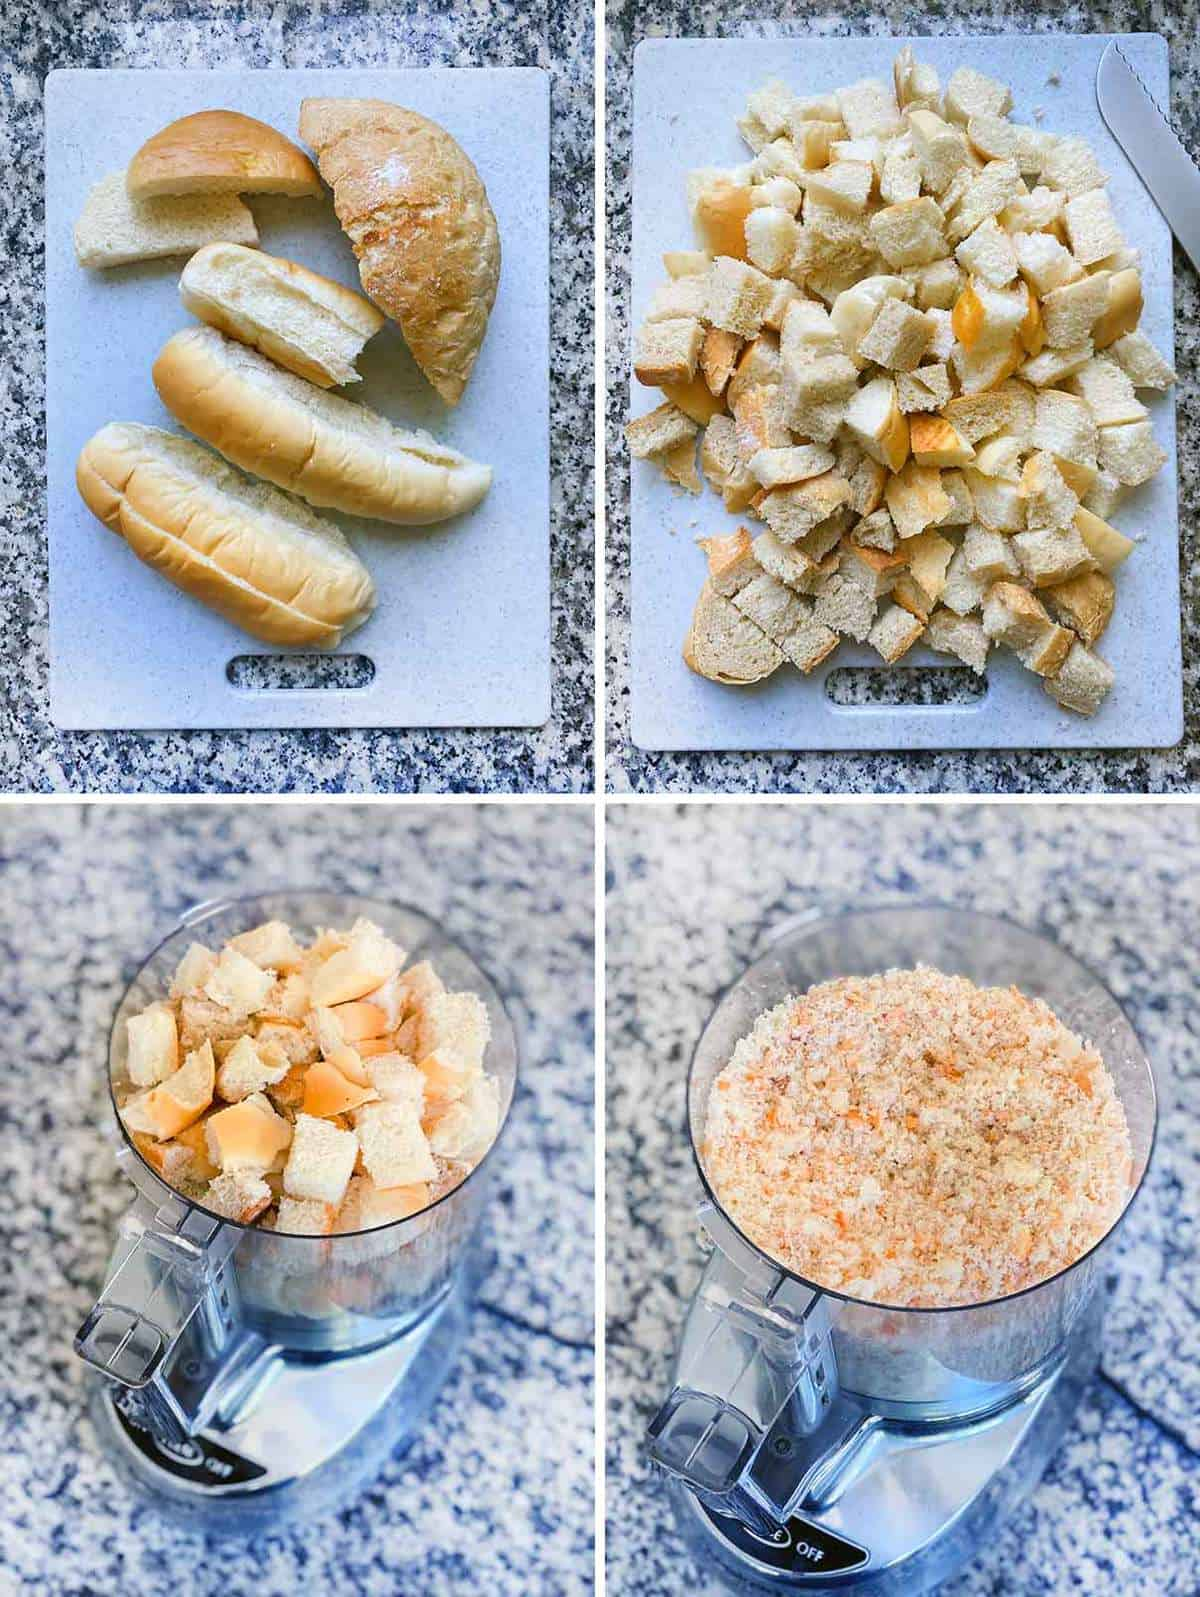 Process collage showing bread cubed then pulsed in the food processor to make bread crumbs.